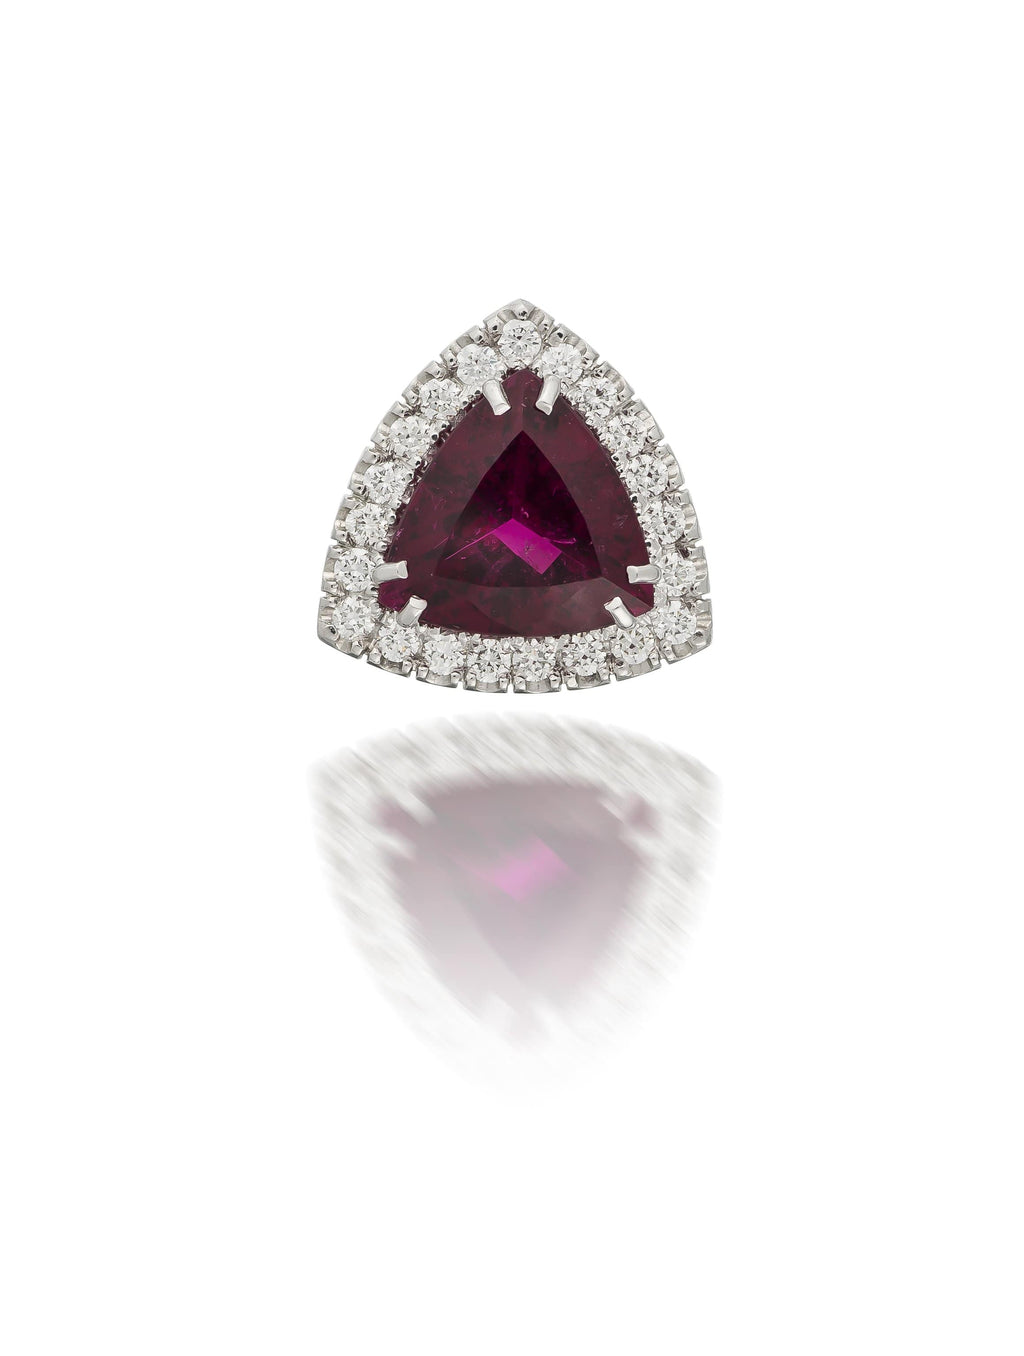 Trilliant Cut Rubellite & Diamond Pendant